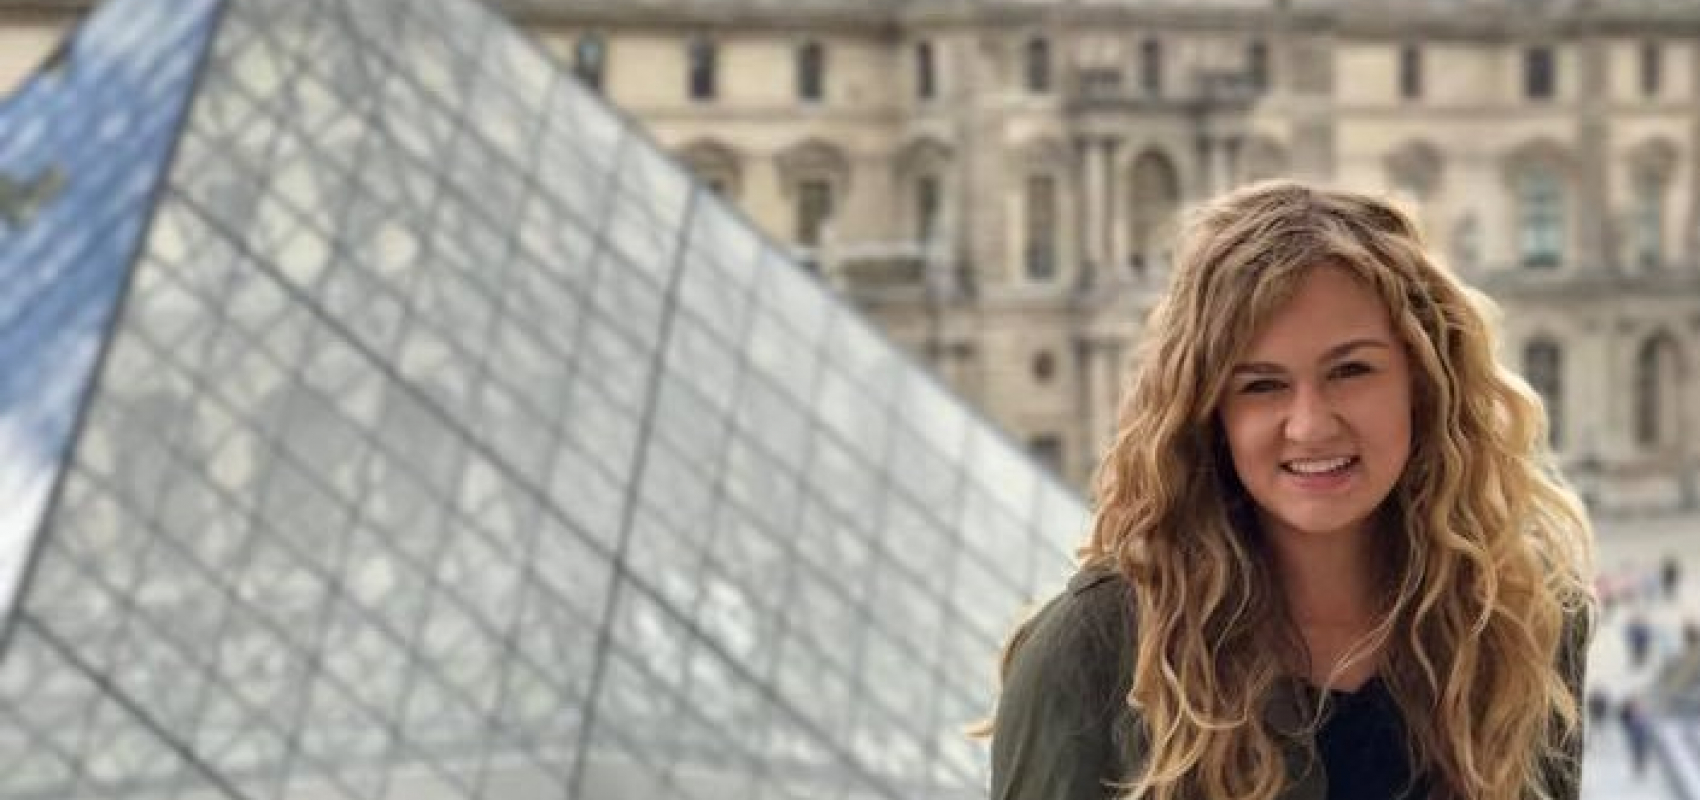 UNI student in front of glass pyramid of the Louvre